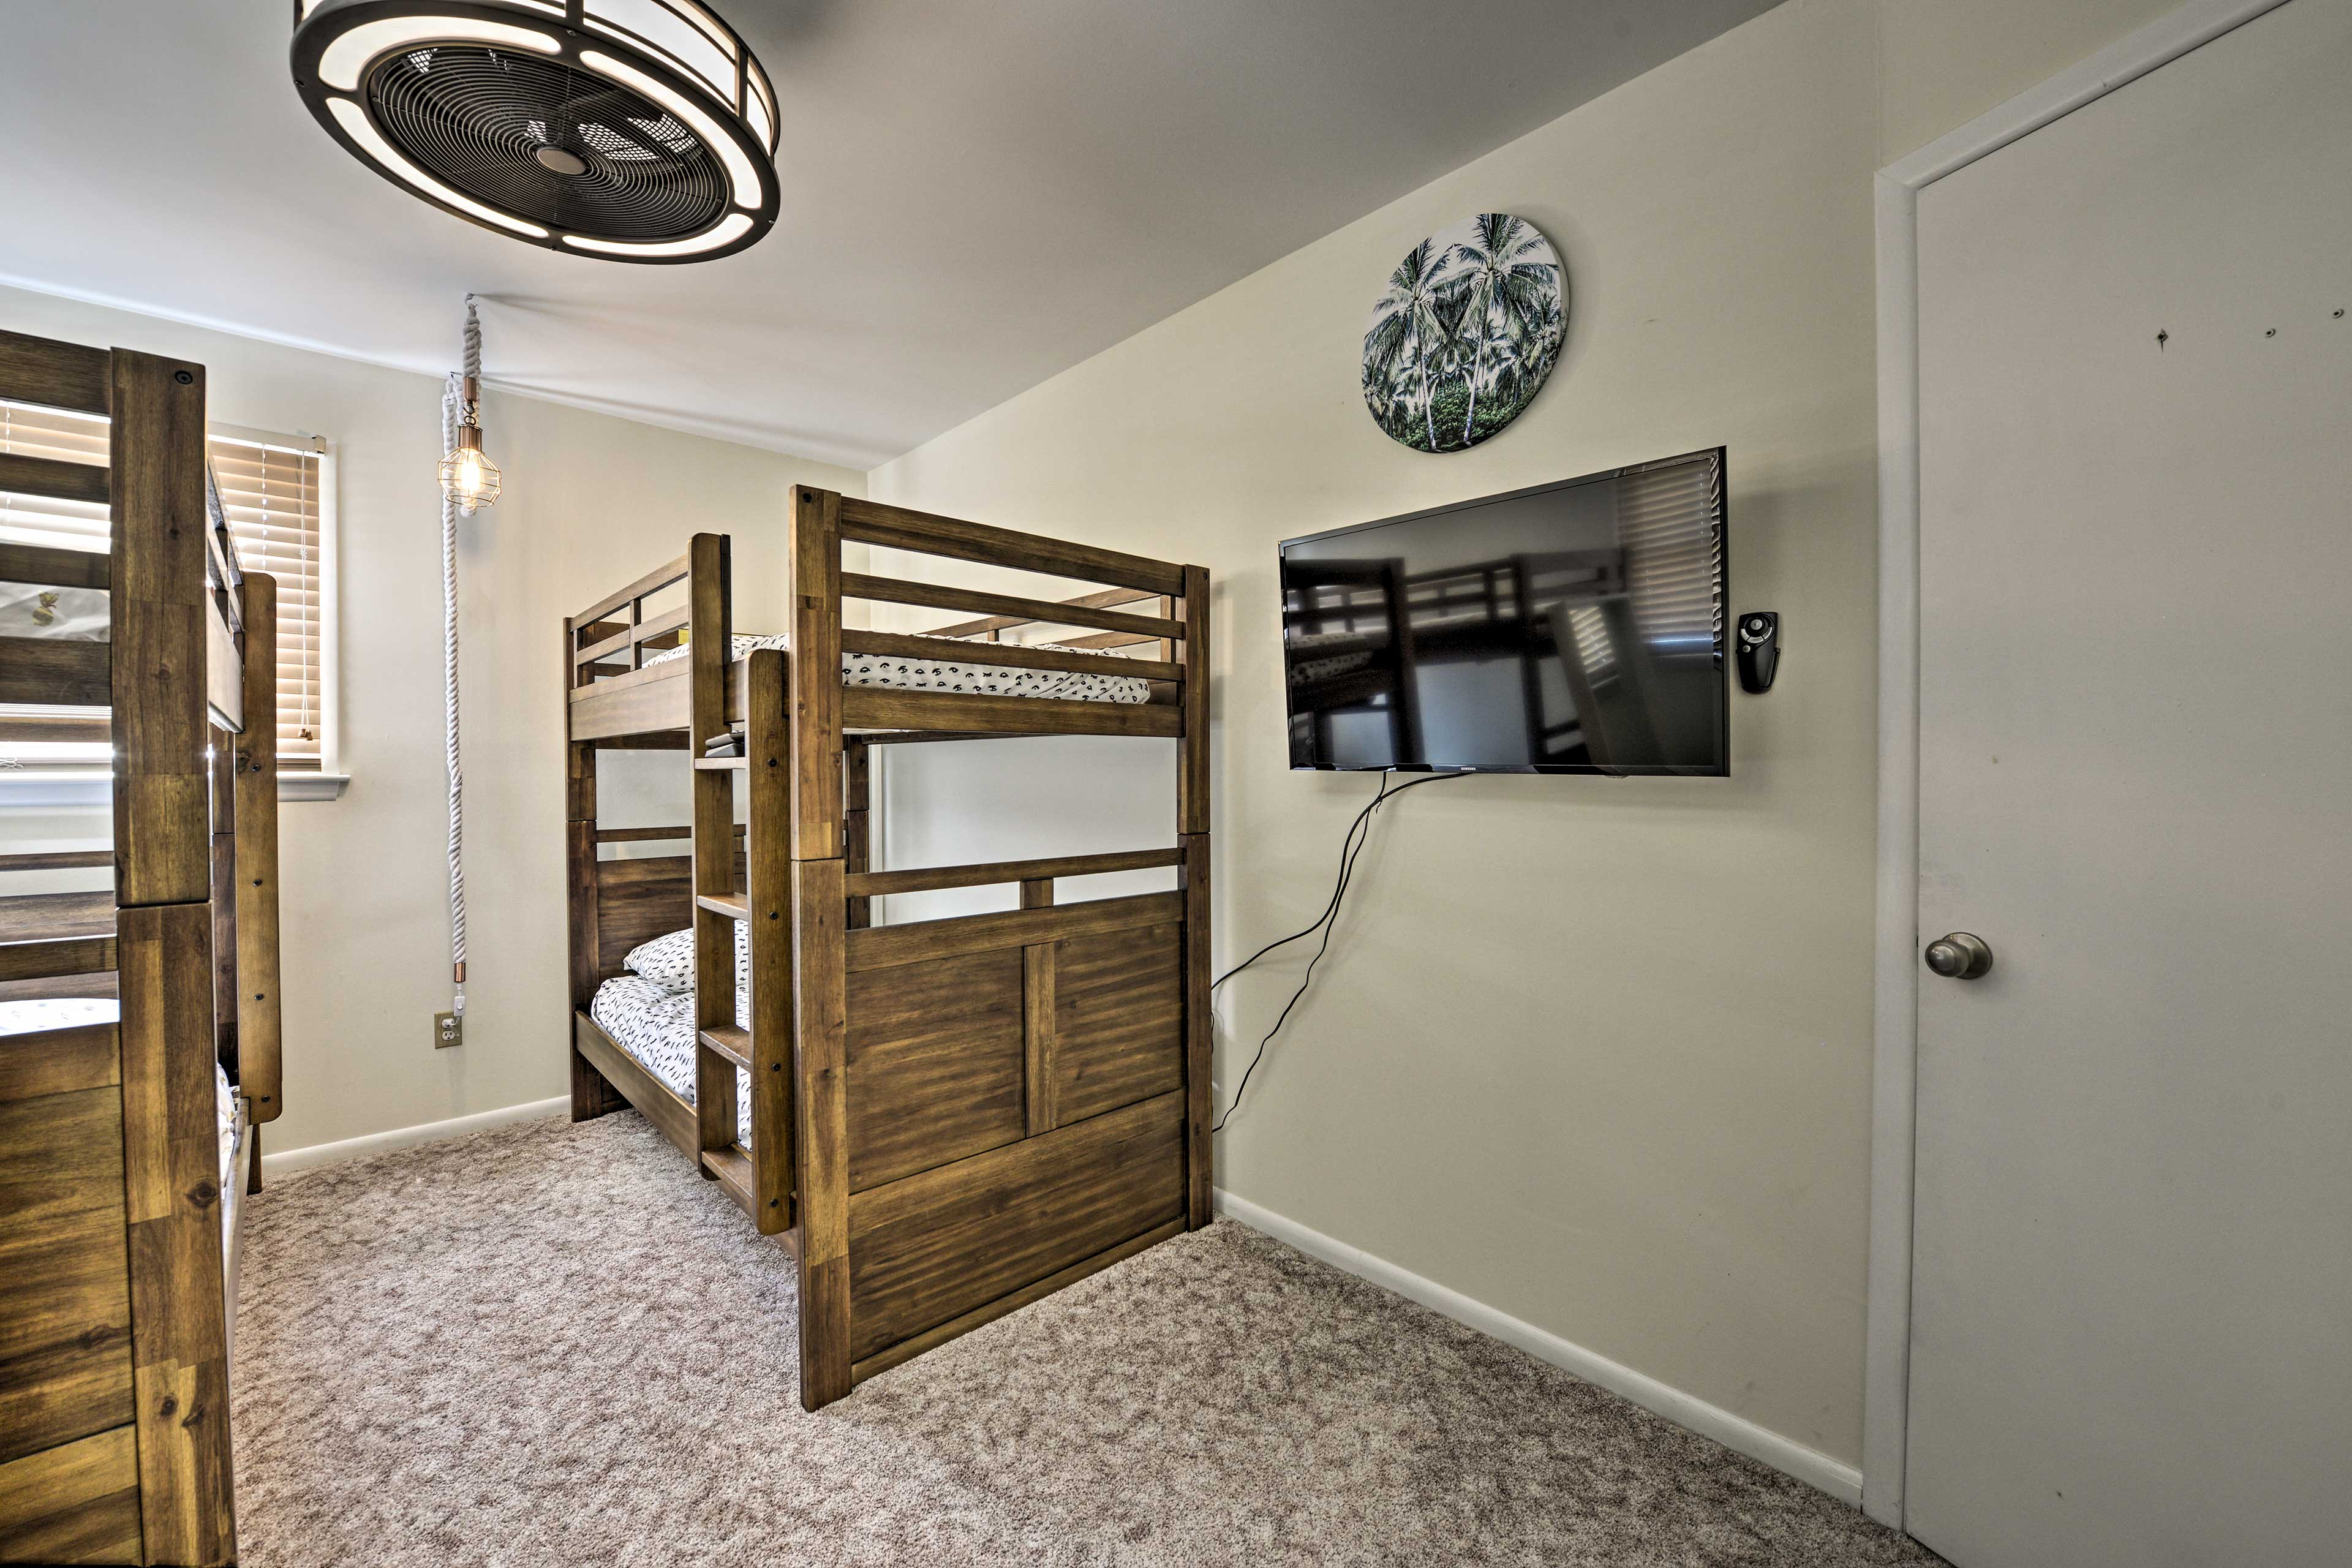 There are 2 twin-over-twin bunk beds.